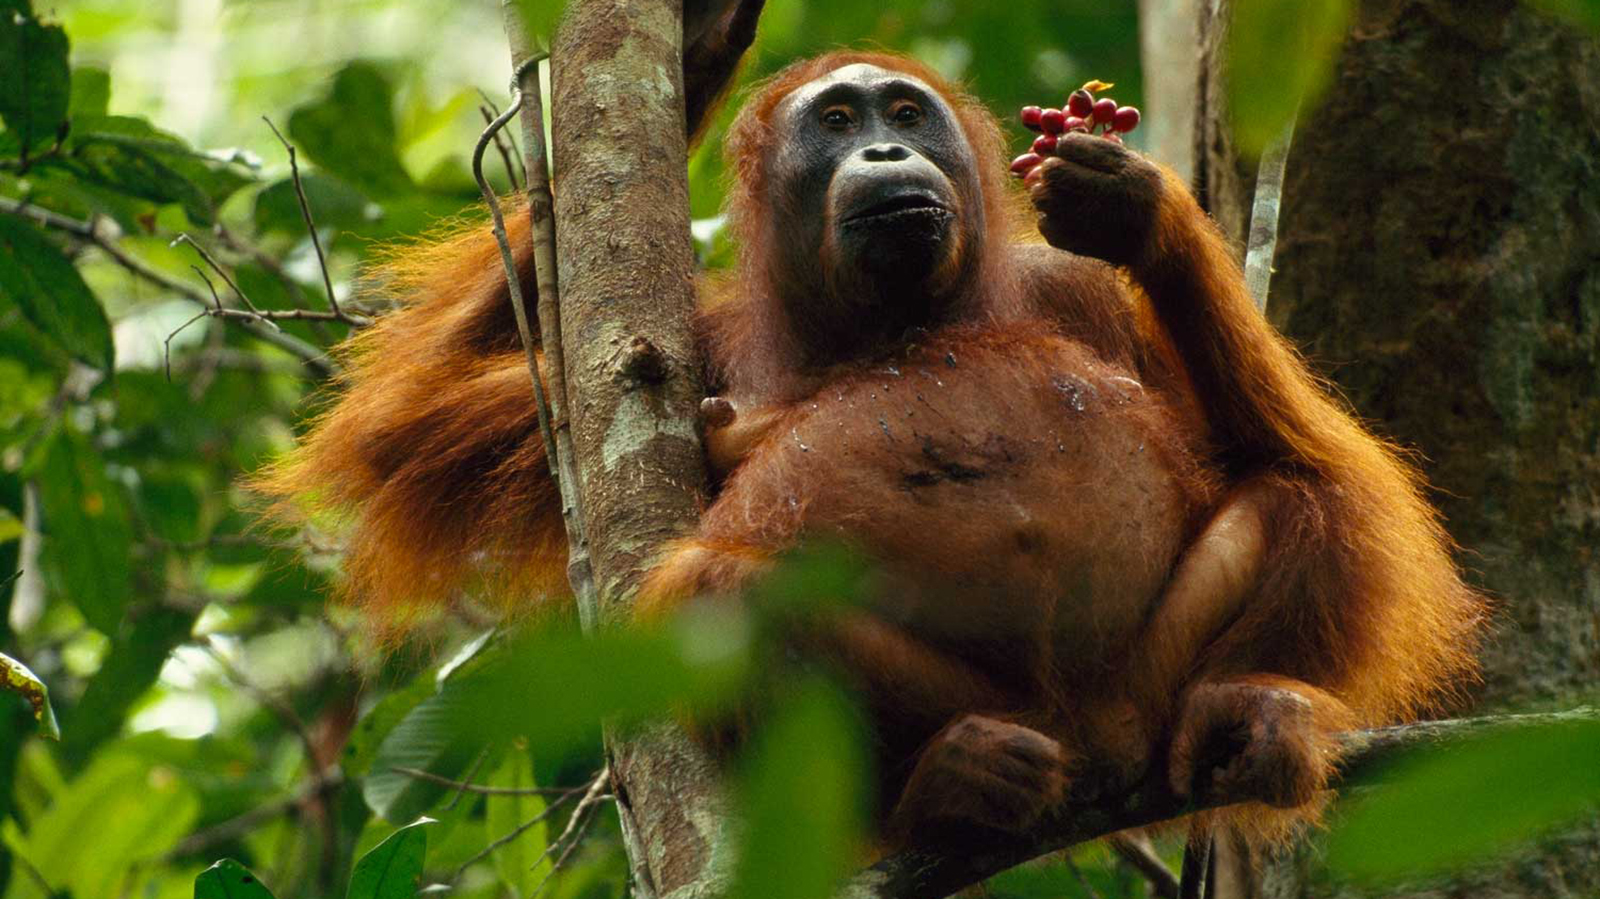 High Resolution Wallpaper | Orangutan 1600x899 px